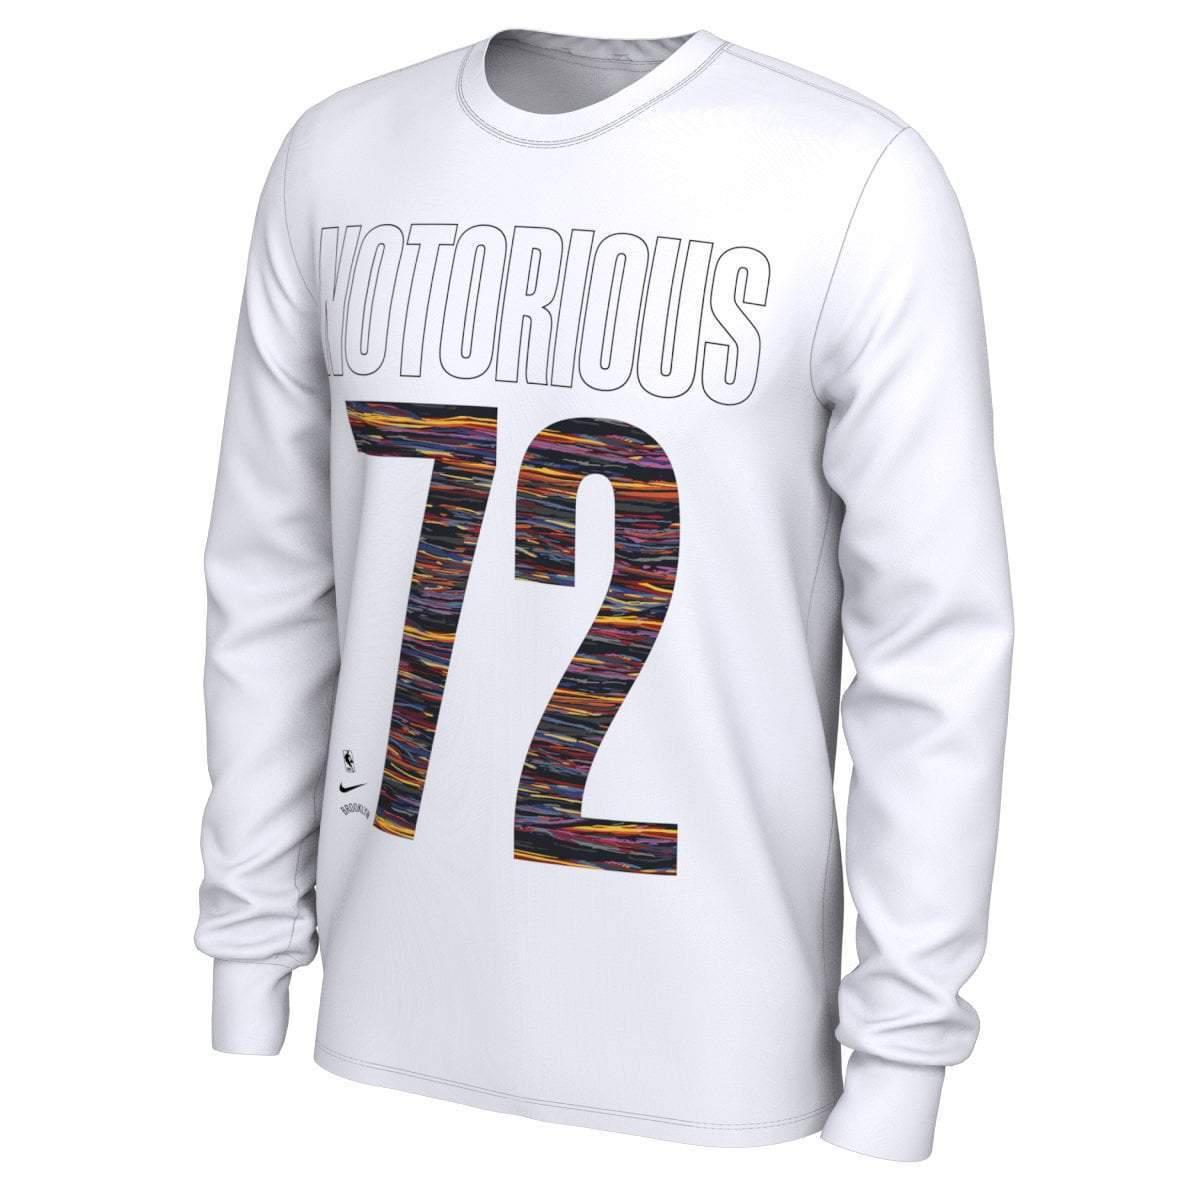 4810d90b6 Nike Long Sleeve Tees WHT / S Brooklyn Nets Nike Music Collection Notorious  #72 Graphic